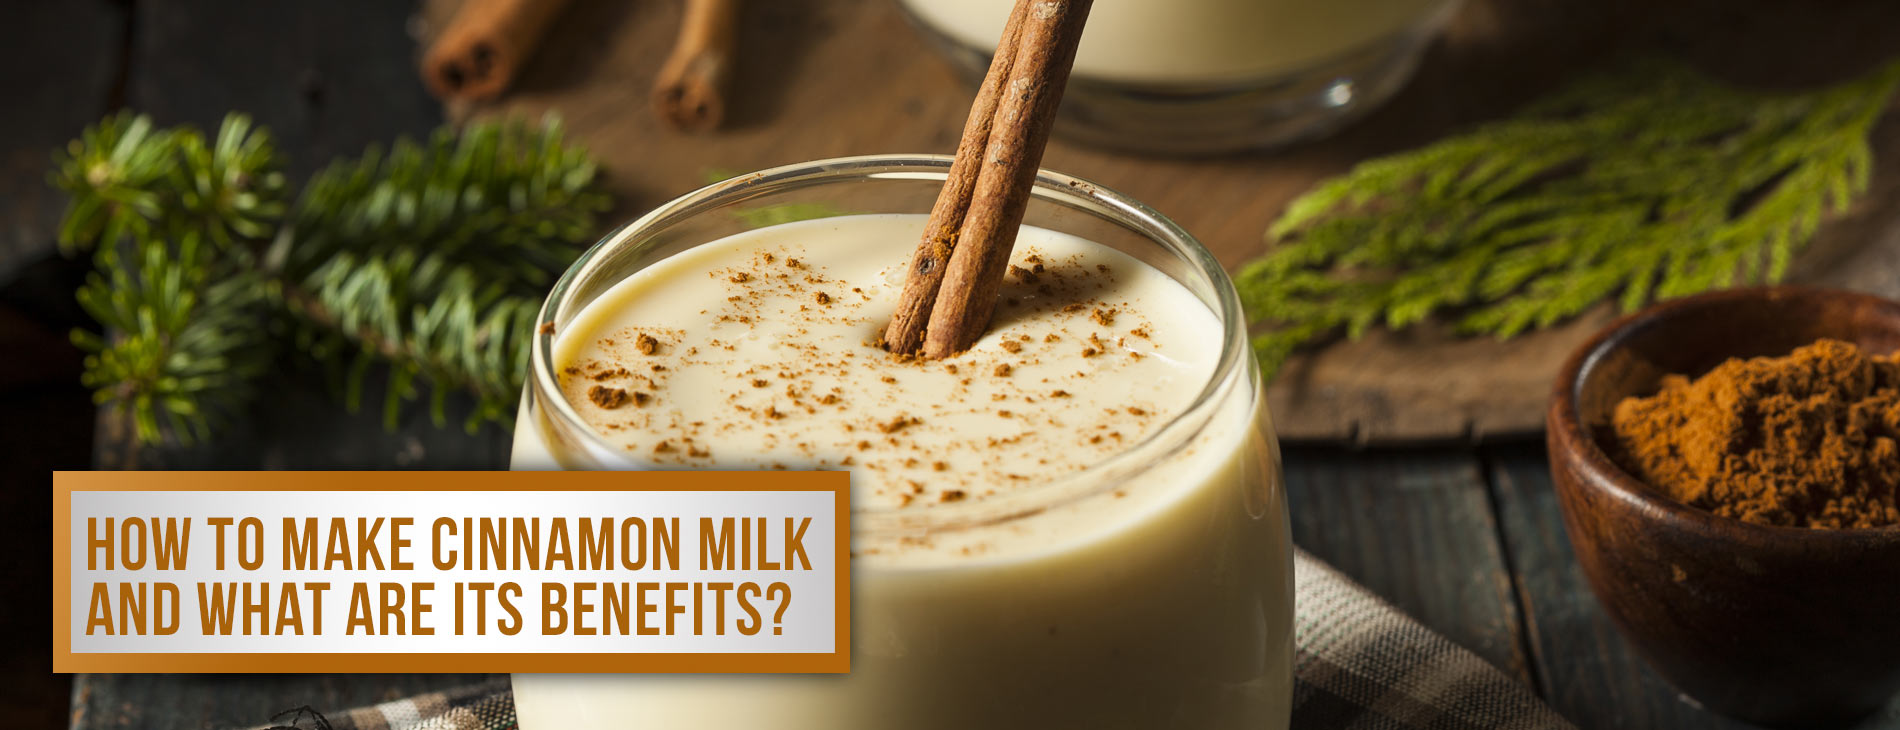 How To Make Cinnamon Milk And What Are Its Benefits